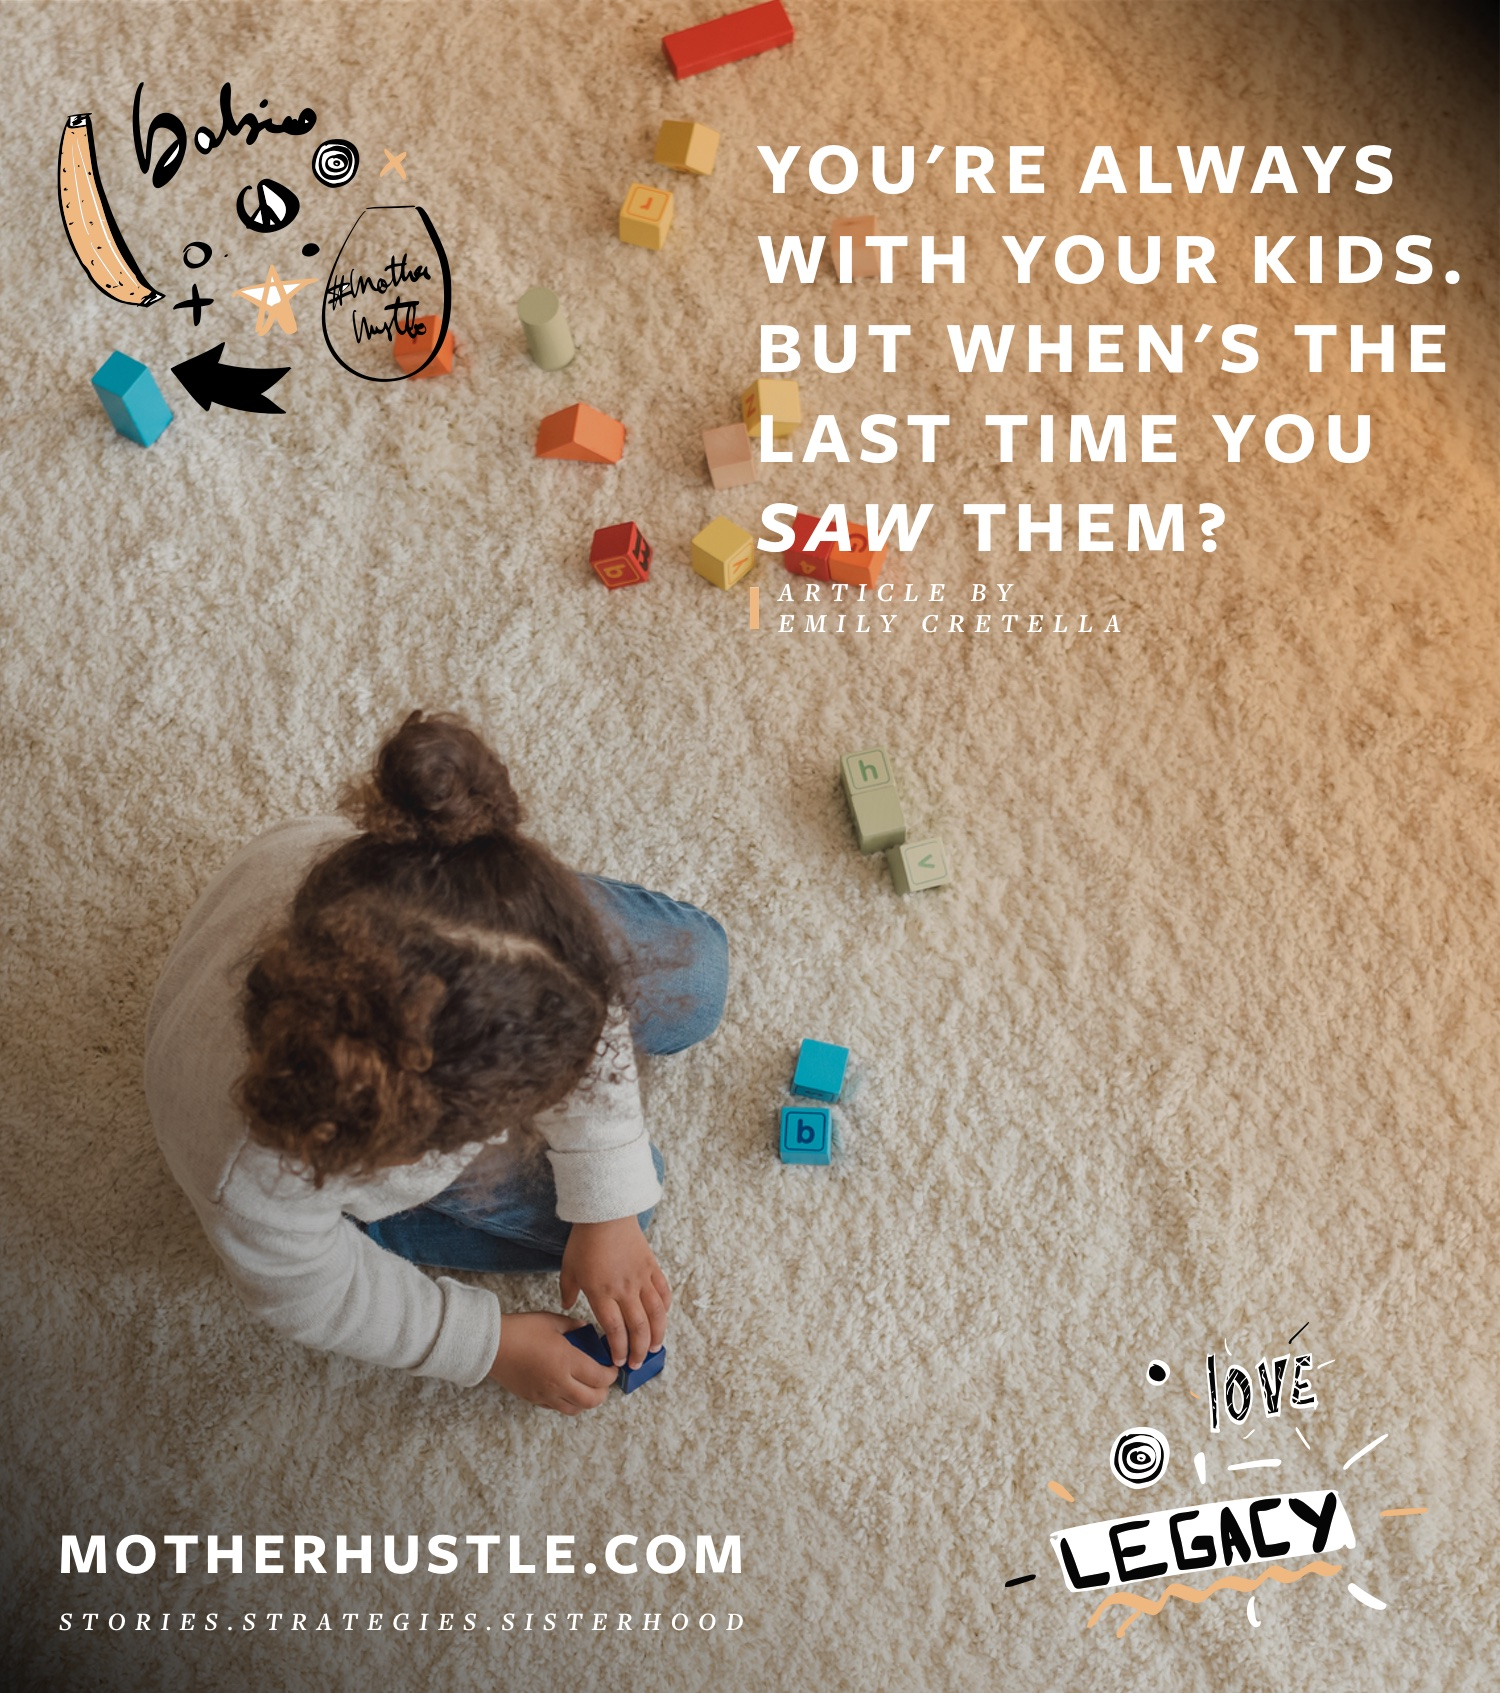 You're Always With Your Kids. But When's The Last Time You *Saw* Them? - by Emily Cretella for MotherHustle